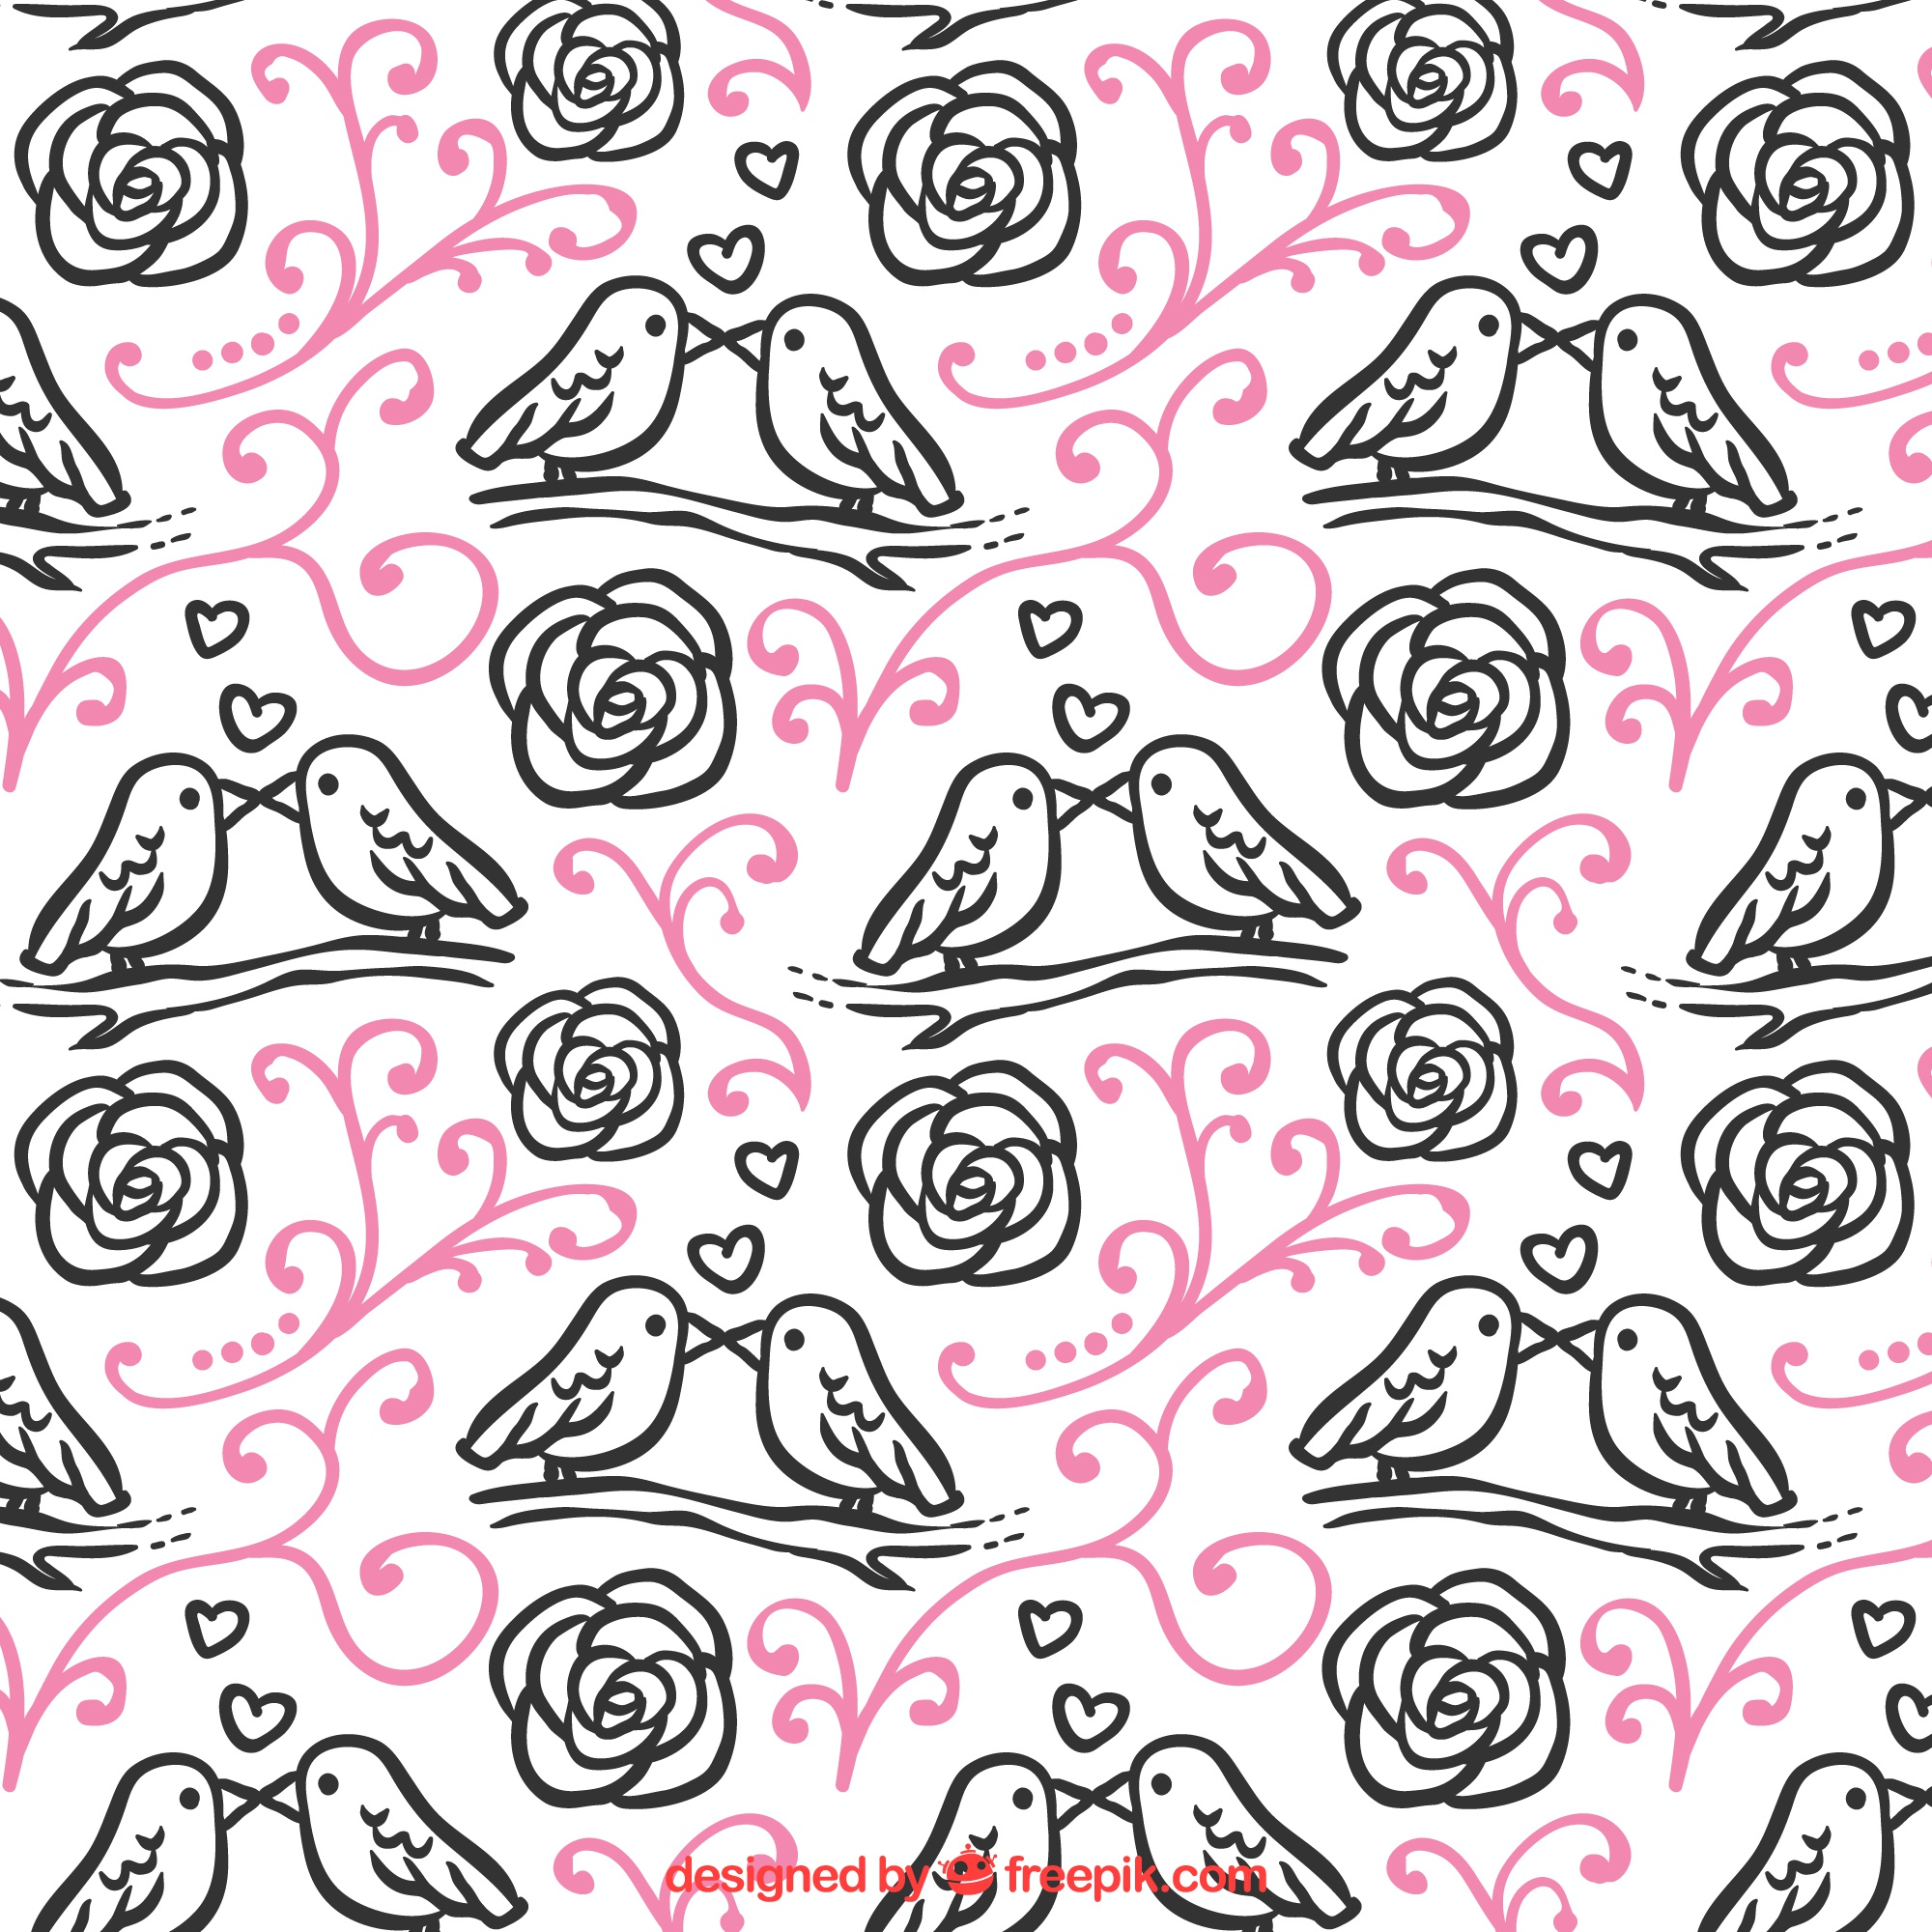 Floral pattern with birds for valentine's day